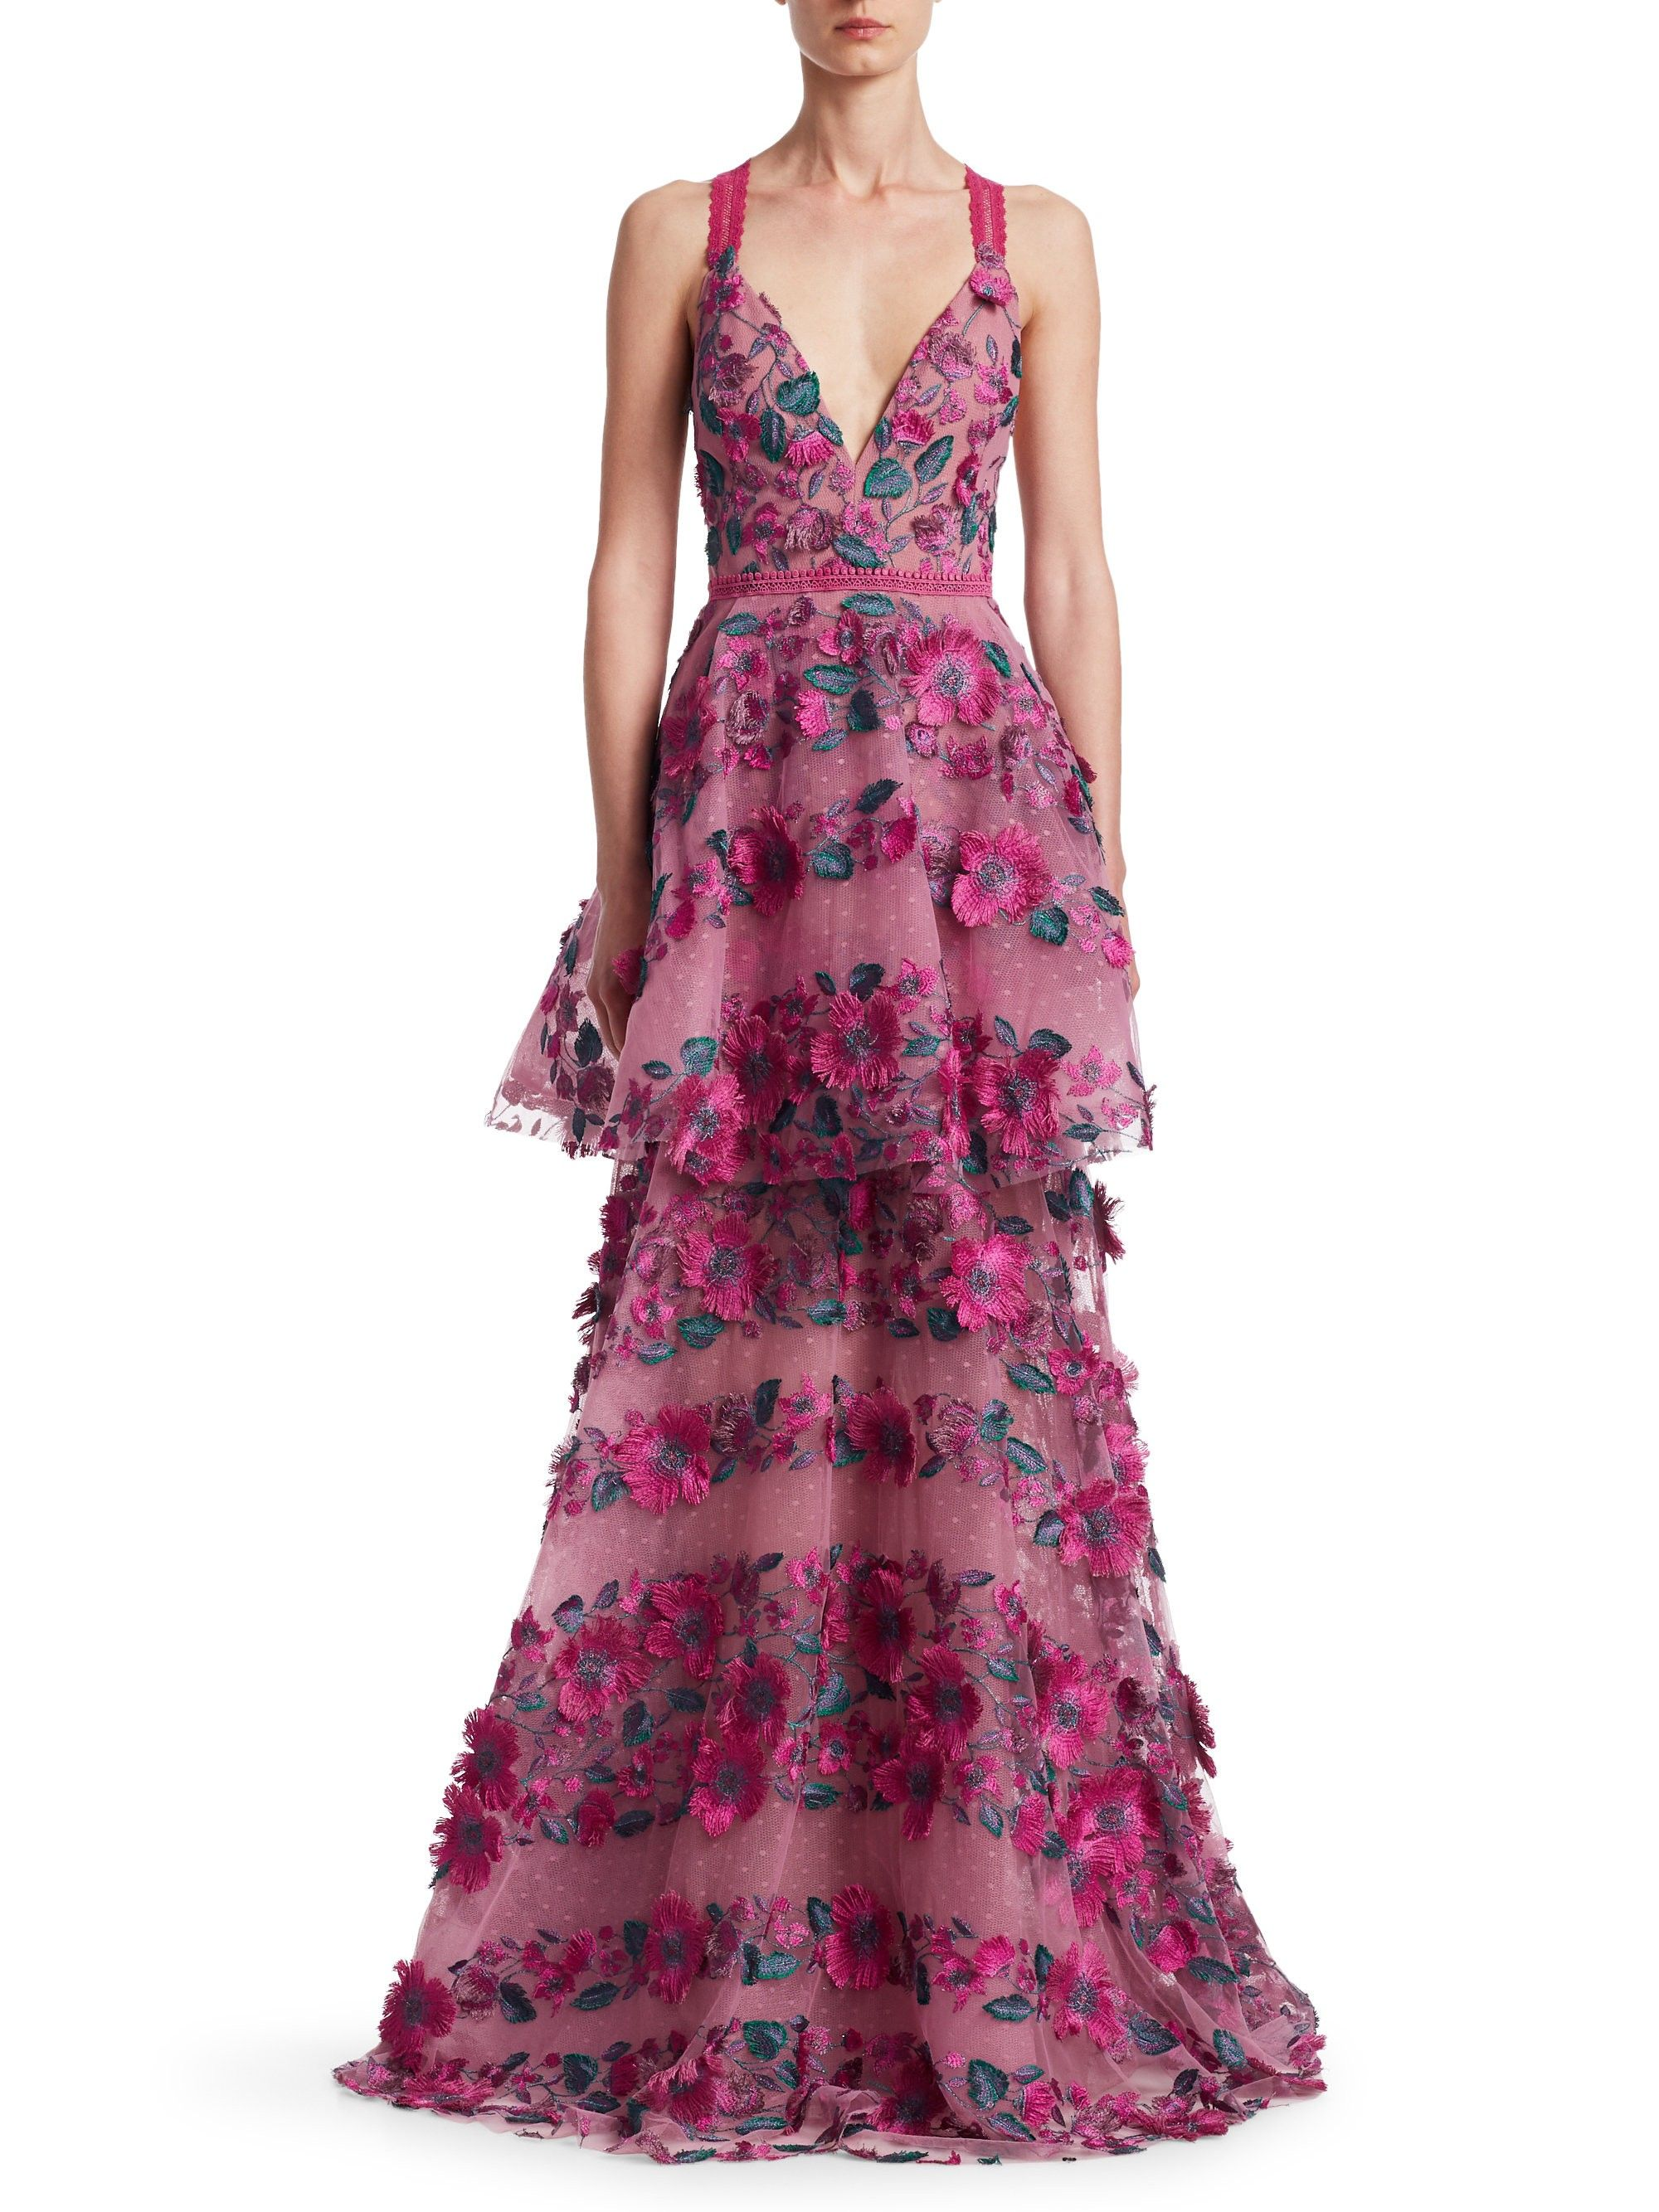 88032224ffed Marchesa Notte Floral Embroidered Tiered Mesh Gown - Pink 14 in 2019 ...